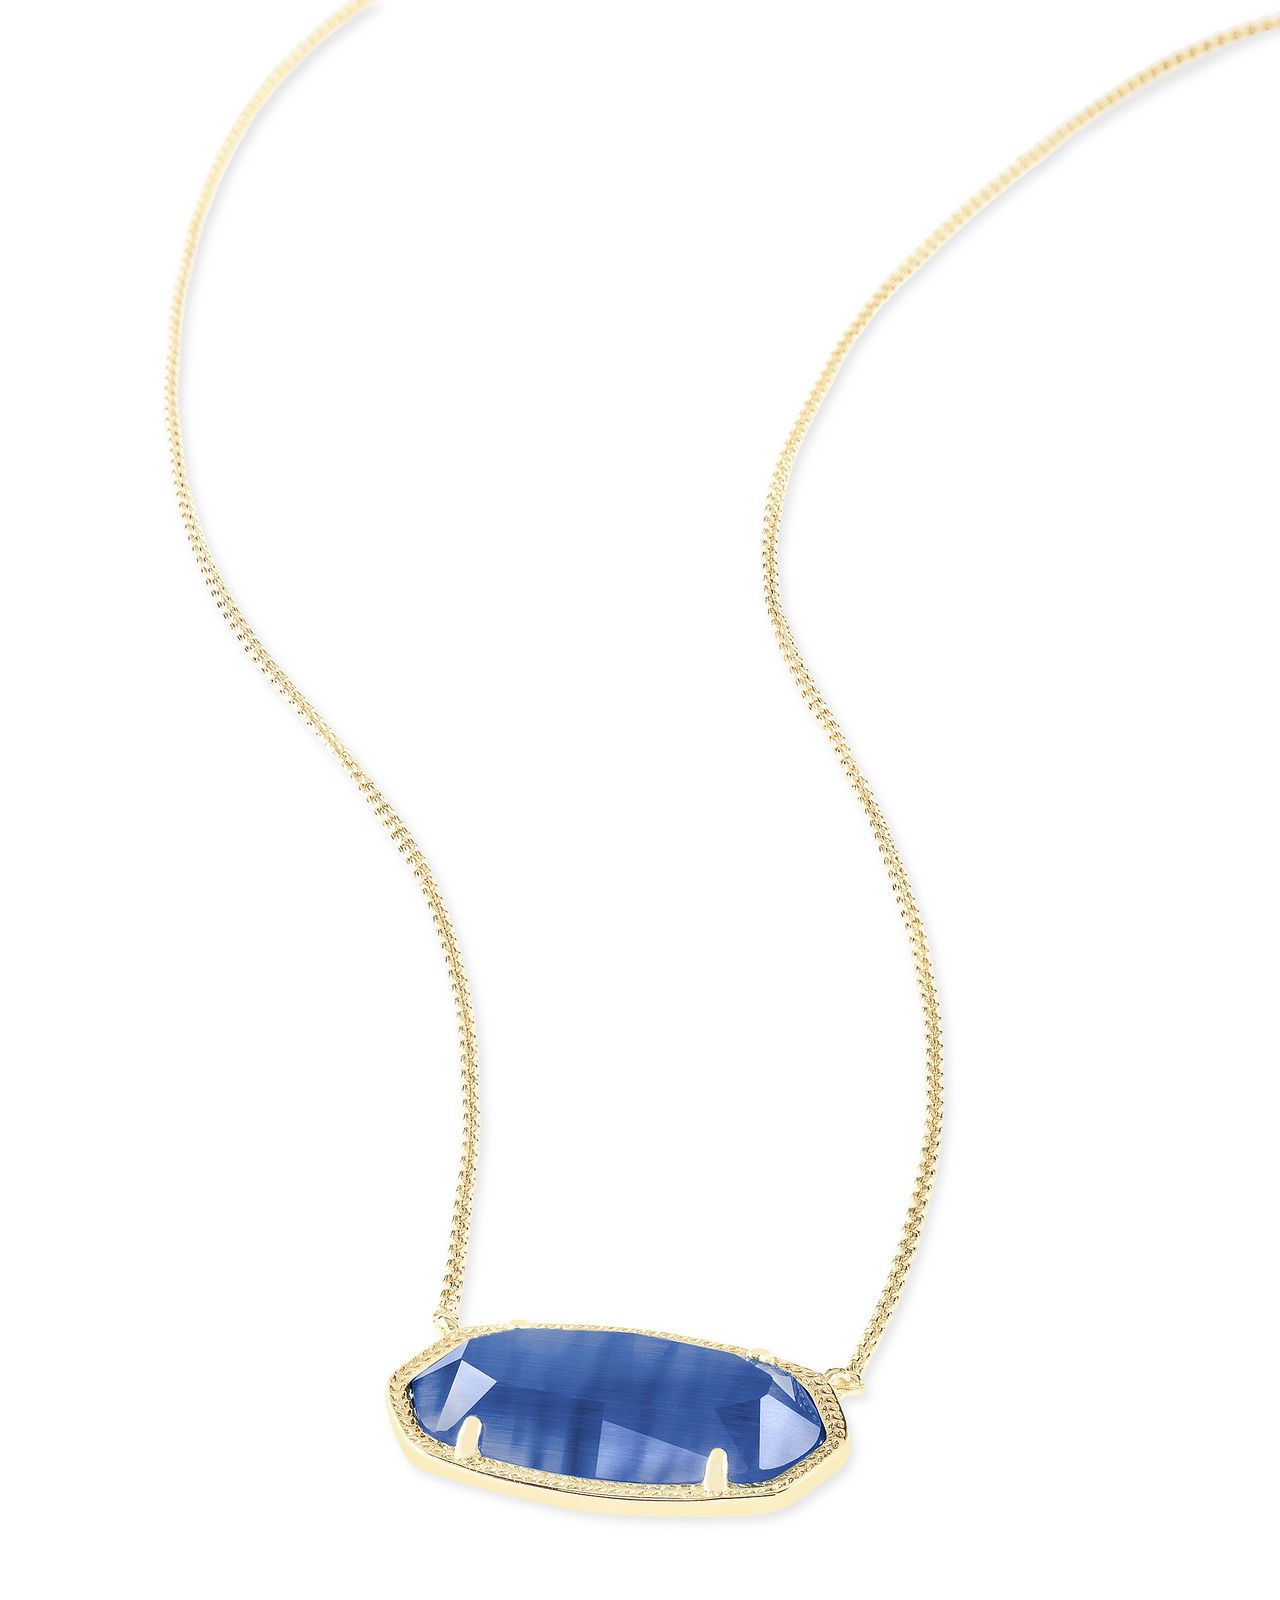 Kendra scott delaney oval pendant necklace in gold and navy cats eye